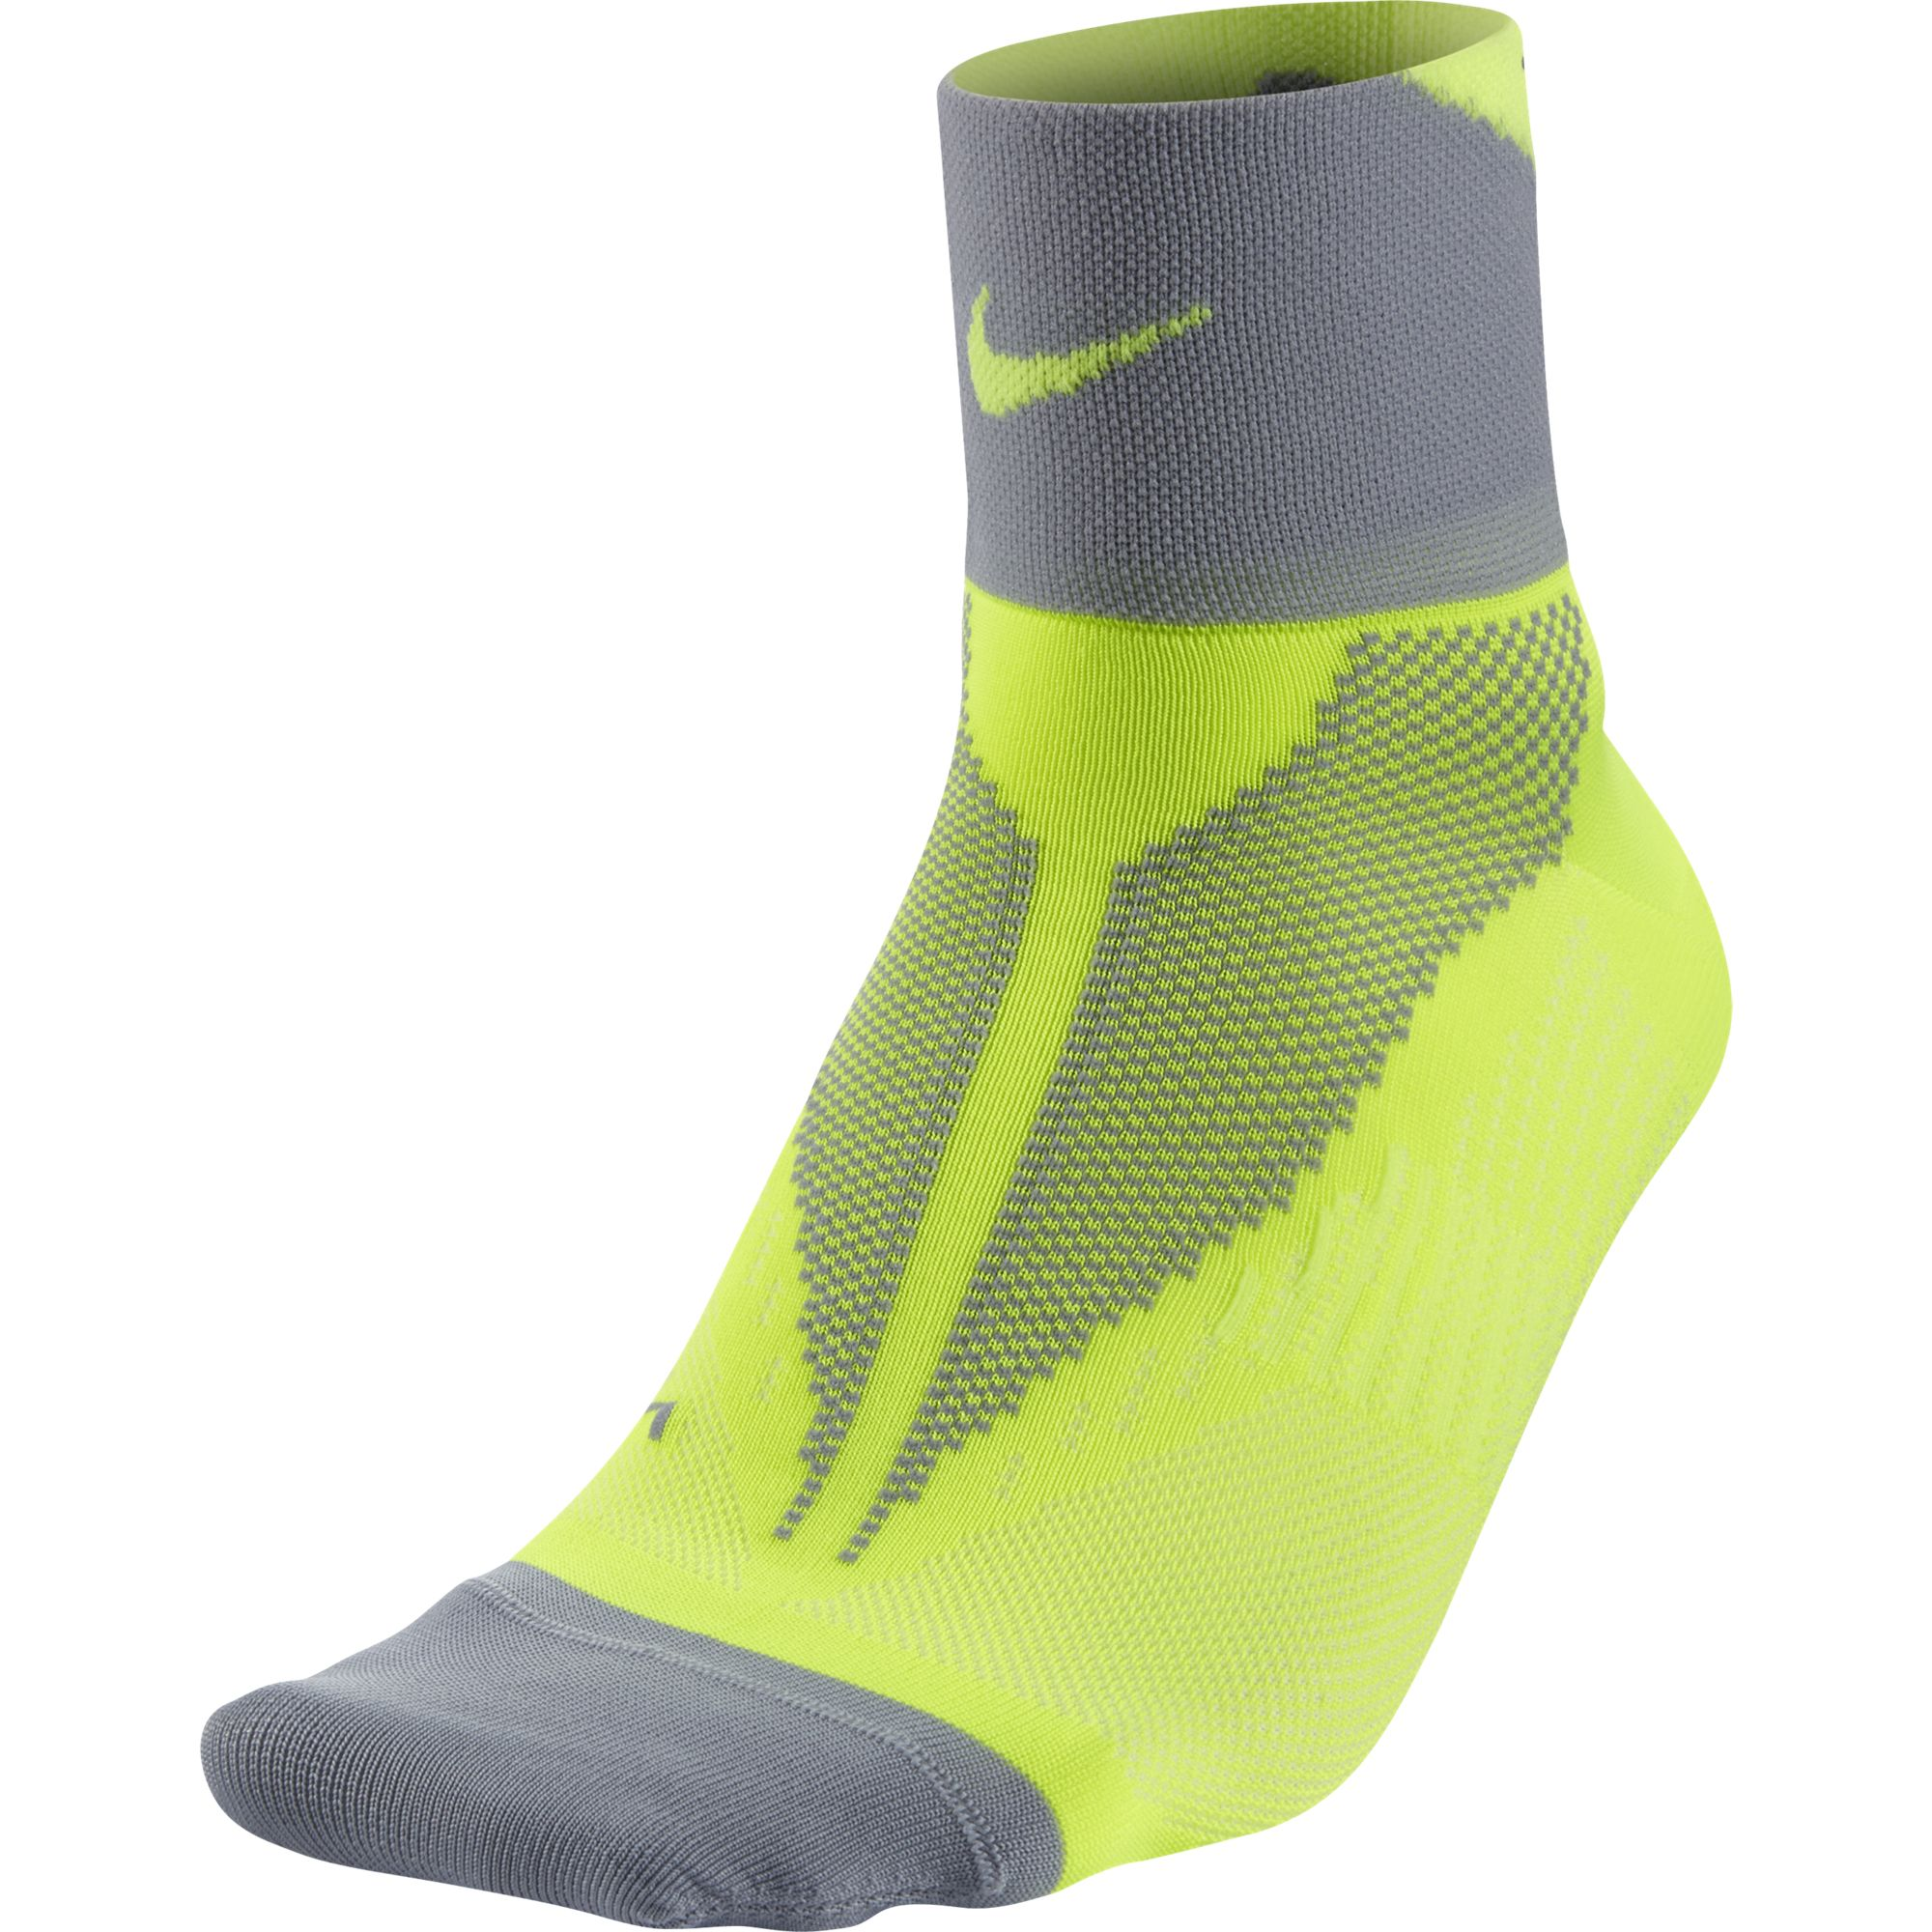 Nike Носки Nike Elite Run Lightwght Quarter, 1 пара повязки nike чулок для щитков nike guard lock elite se0173 011